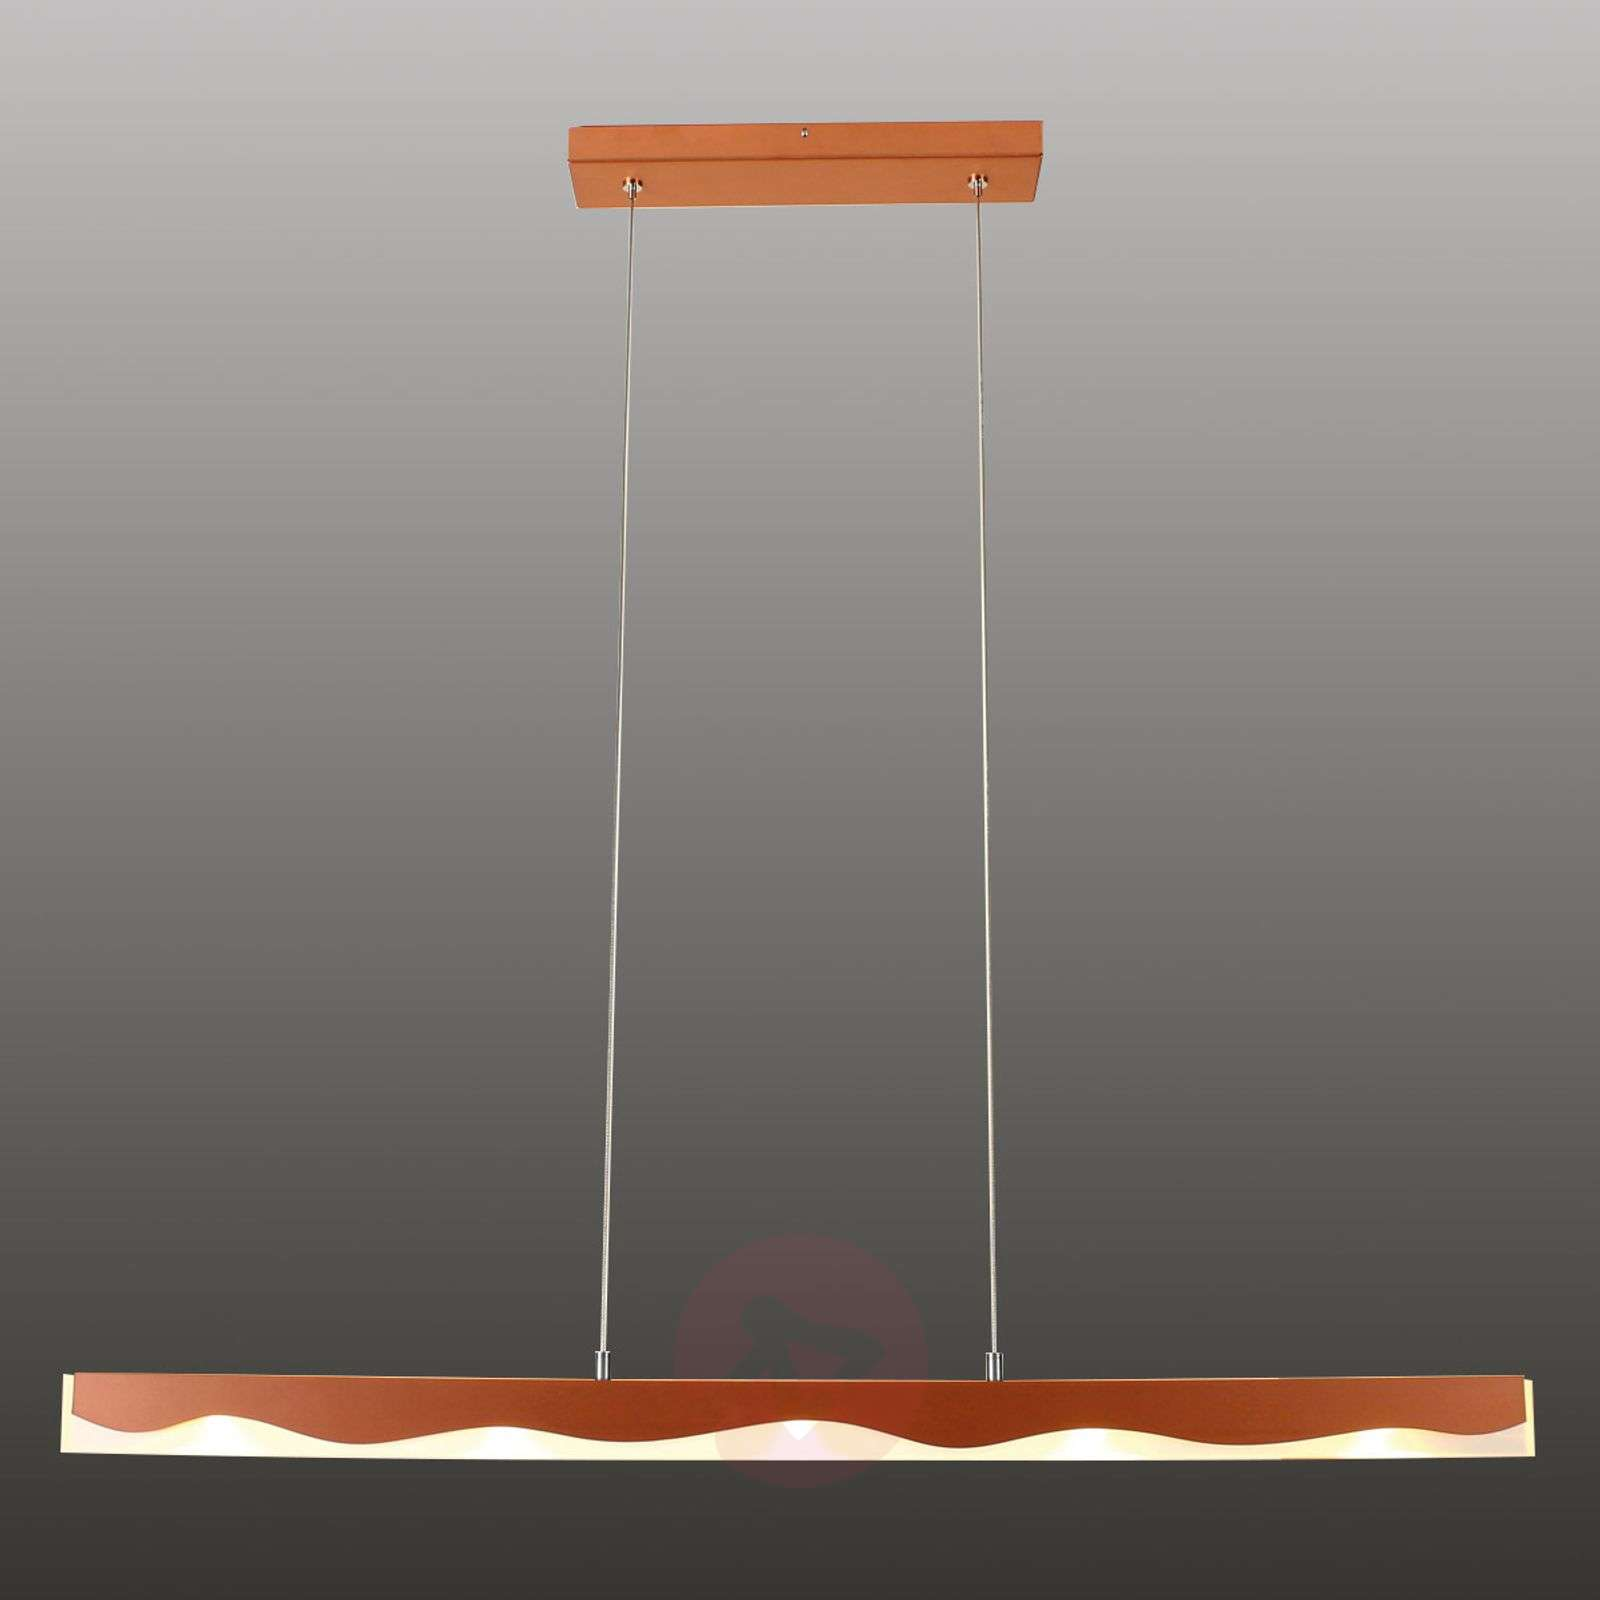 La Mer controllable pendant lamp with a wave form-1556103-01